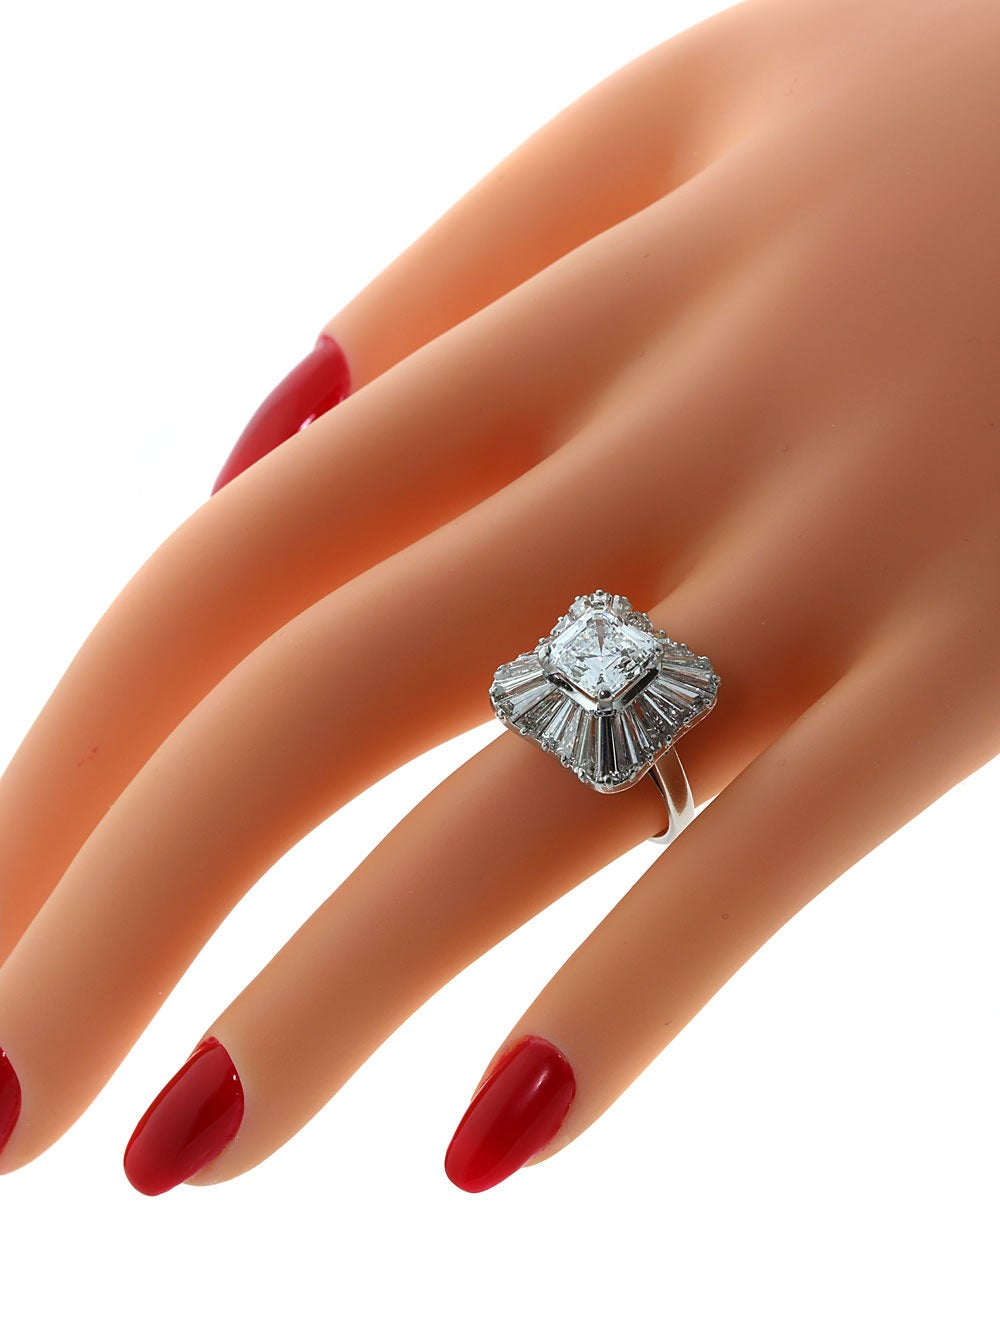 Gia Engagement Rings For Sale